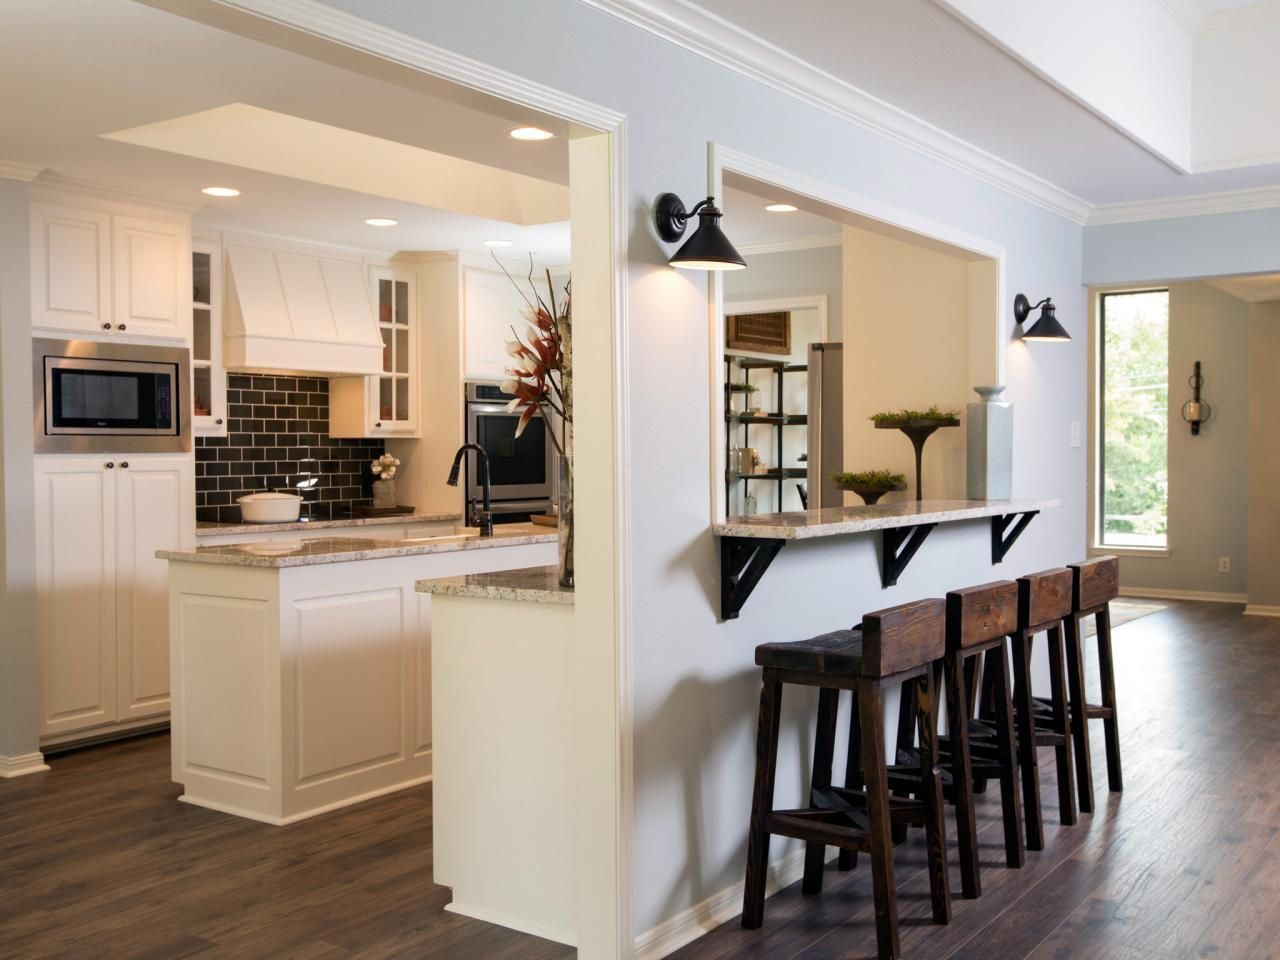 Fixer upper a rush to renovate an us ranch home bar breakfast